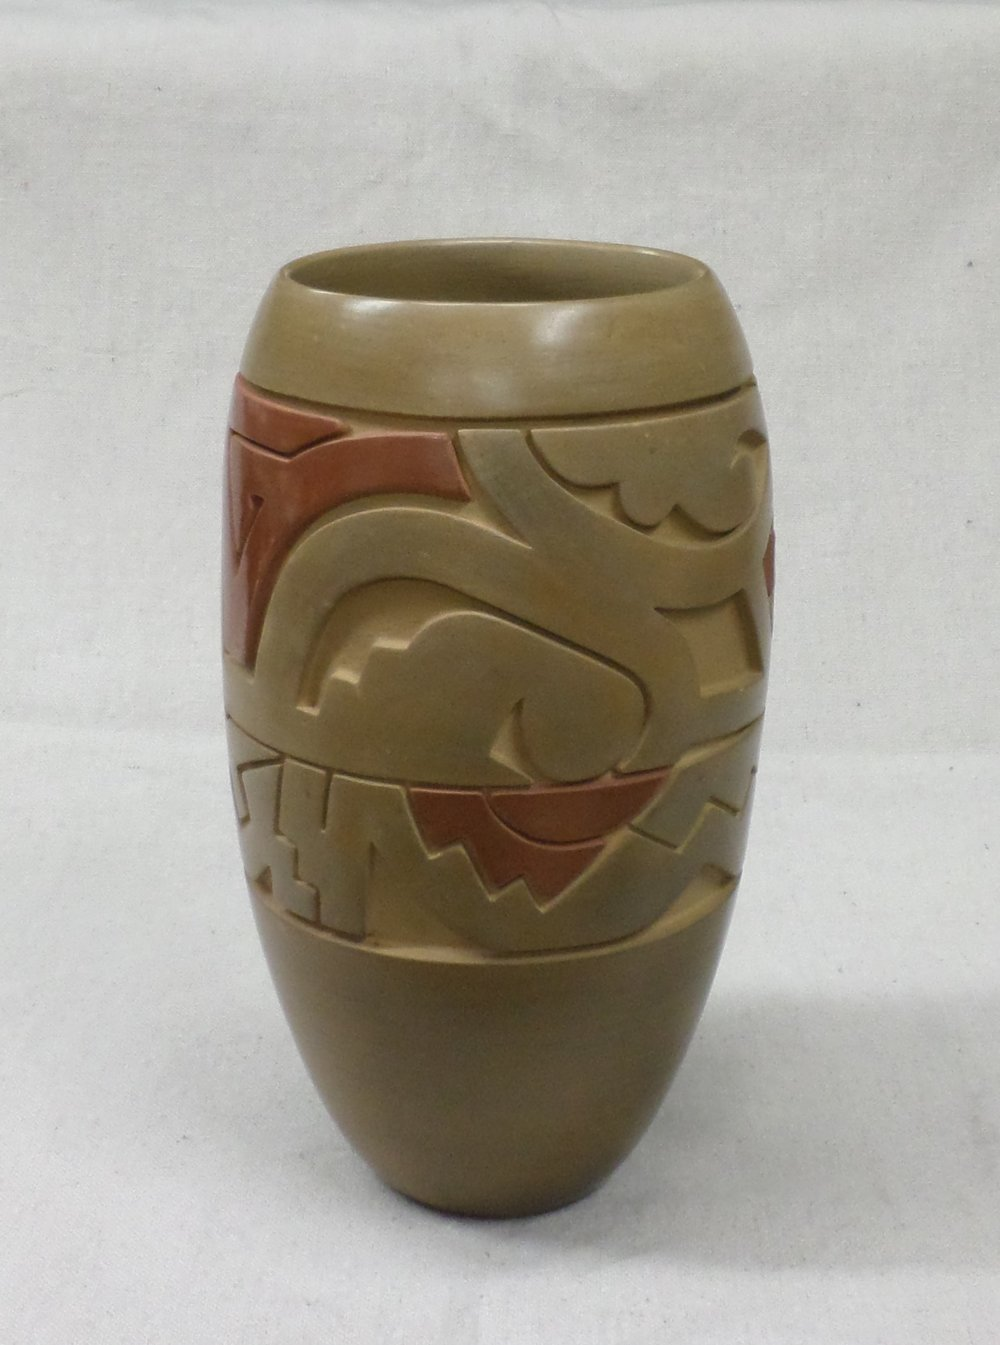 "Red - on - Gold Vase with various designs representing a storm including lightning, clouds, rain, water and phases of the moon  9-1/2"" H X 5-1/2"" Dia.  SOLD"